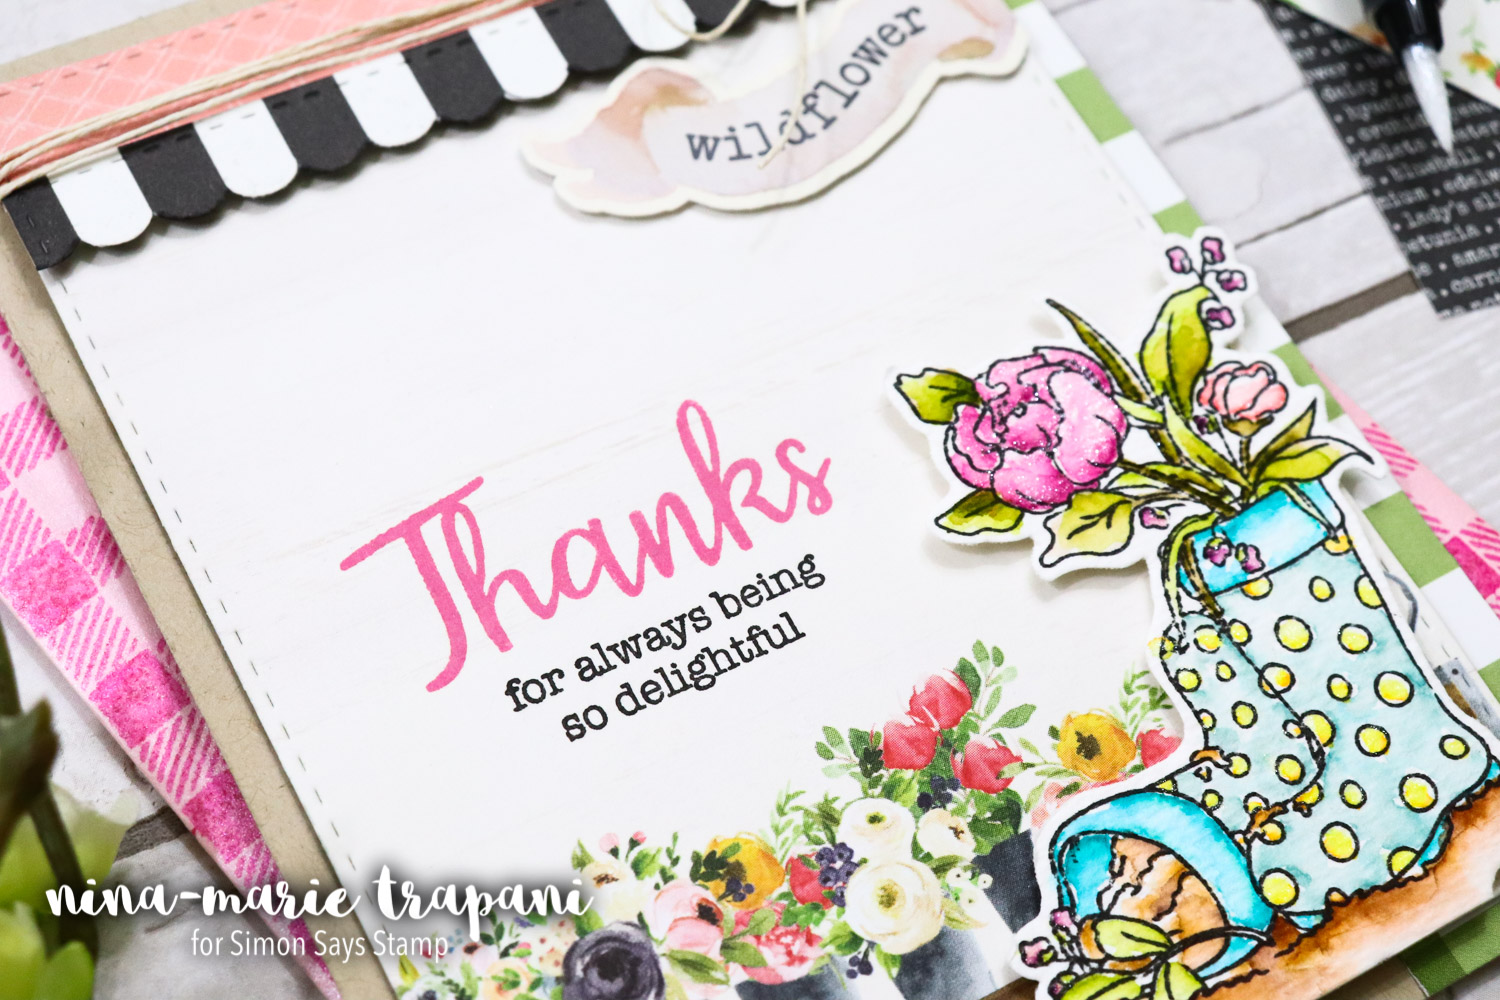 Simon's Choose Joy March 2018 Card Kit: Inspiration + See Inside!